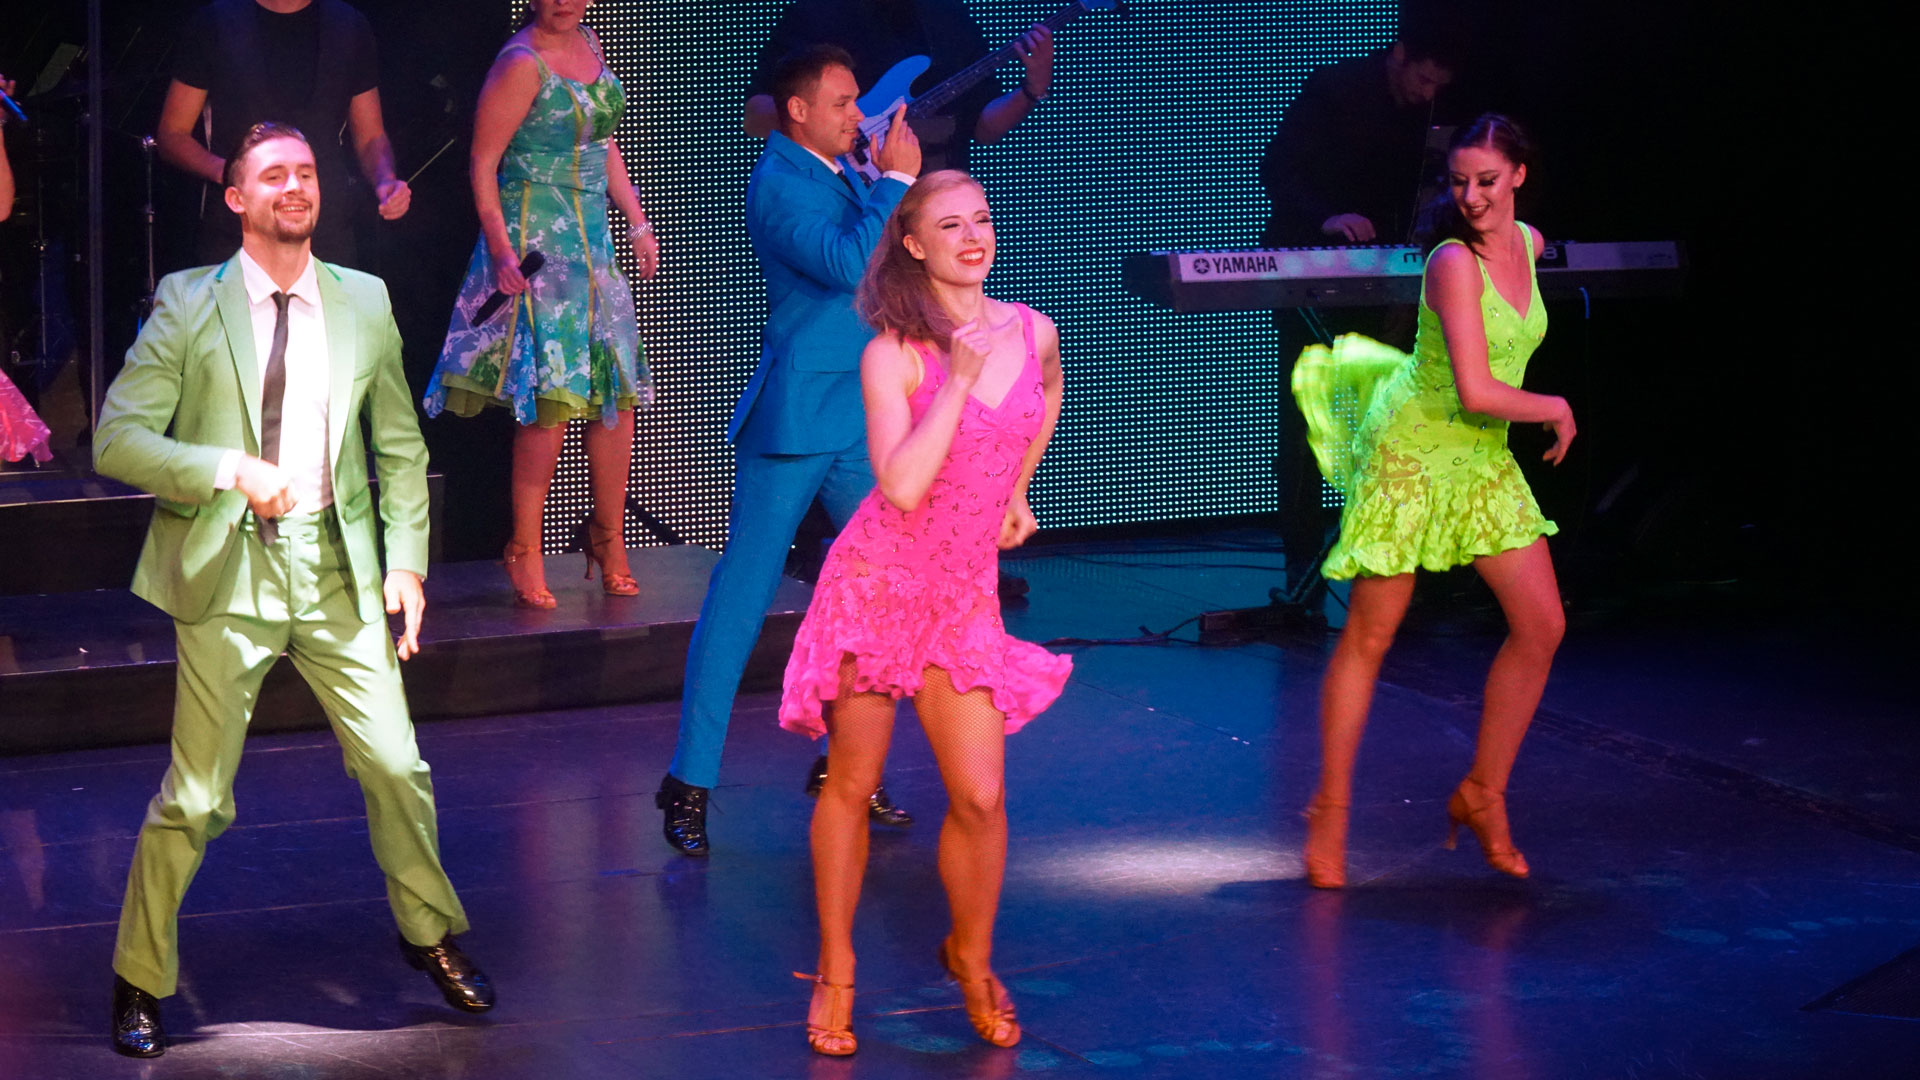 2018 World Cruise Entertainers The Inside Cabin Exploring The World From The Inside Cabin